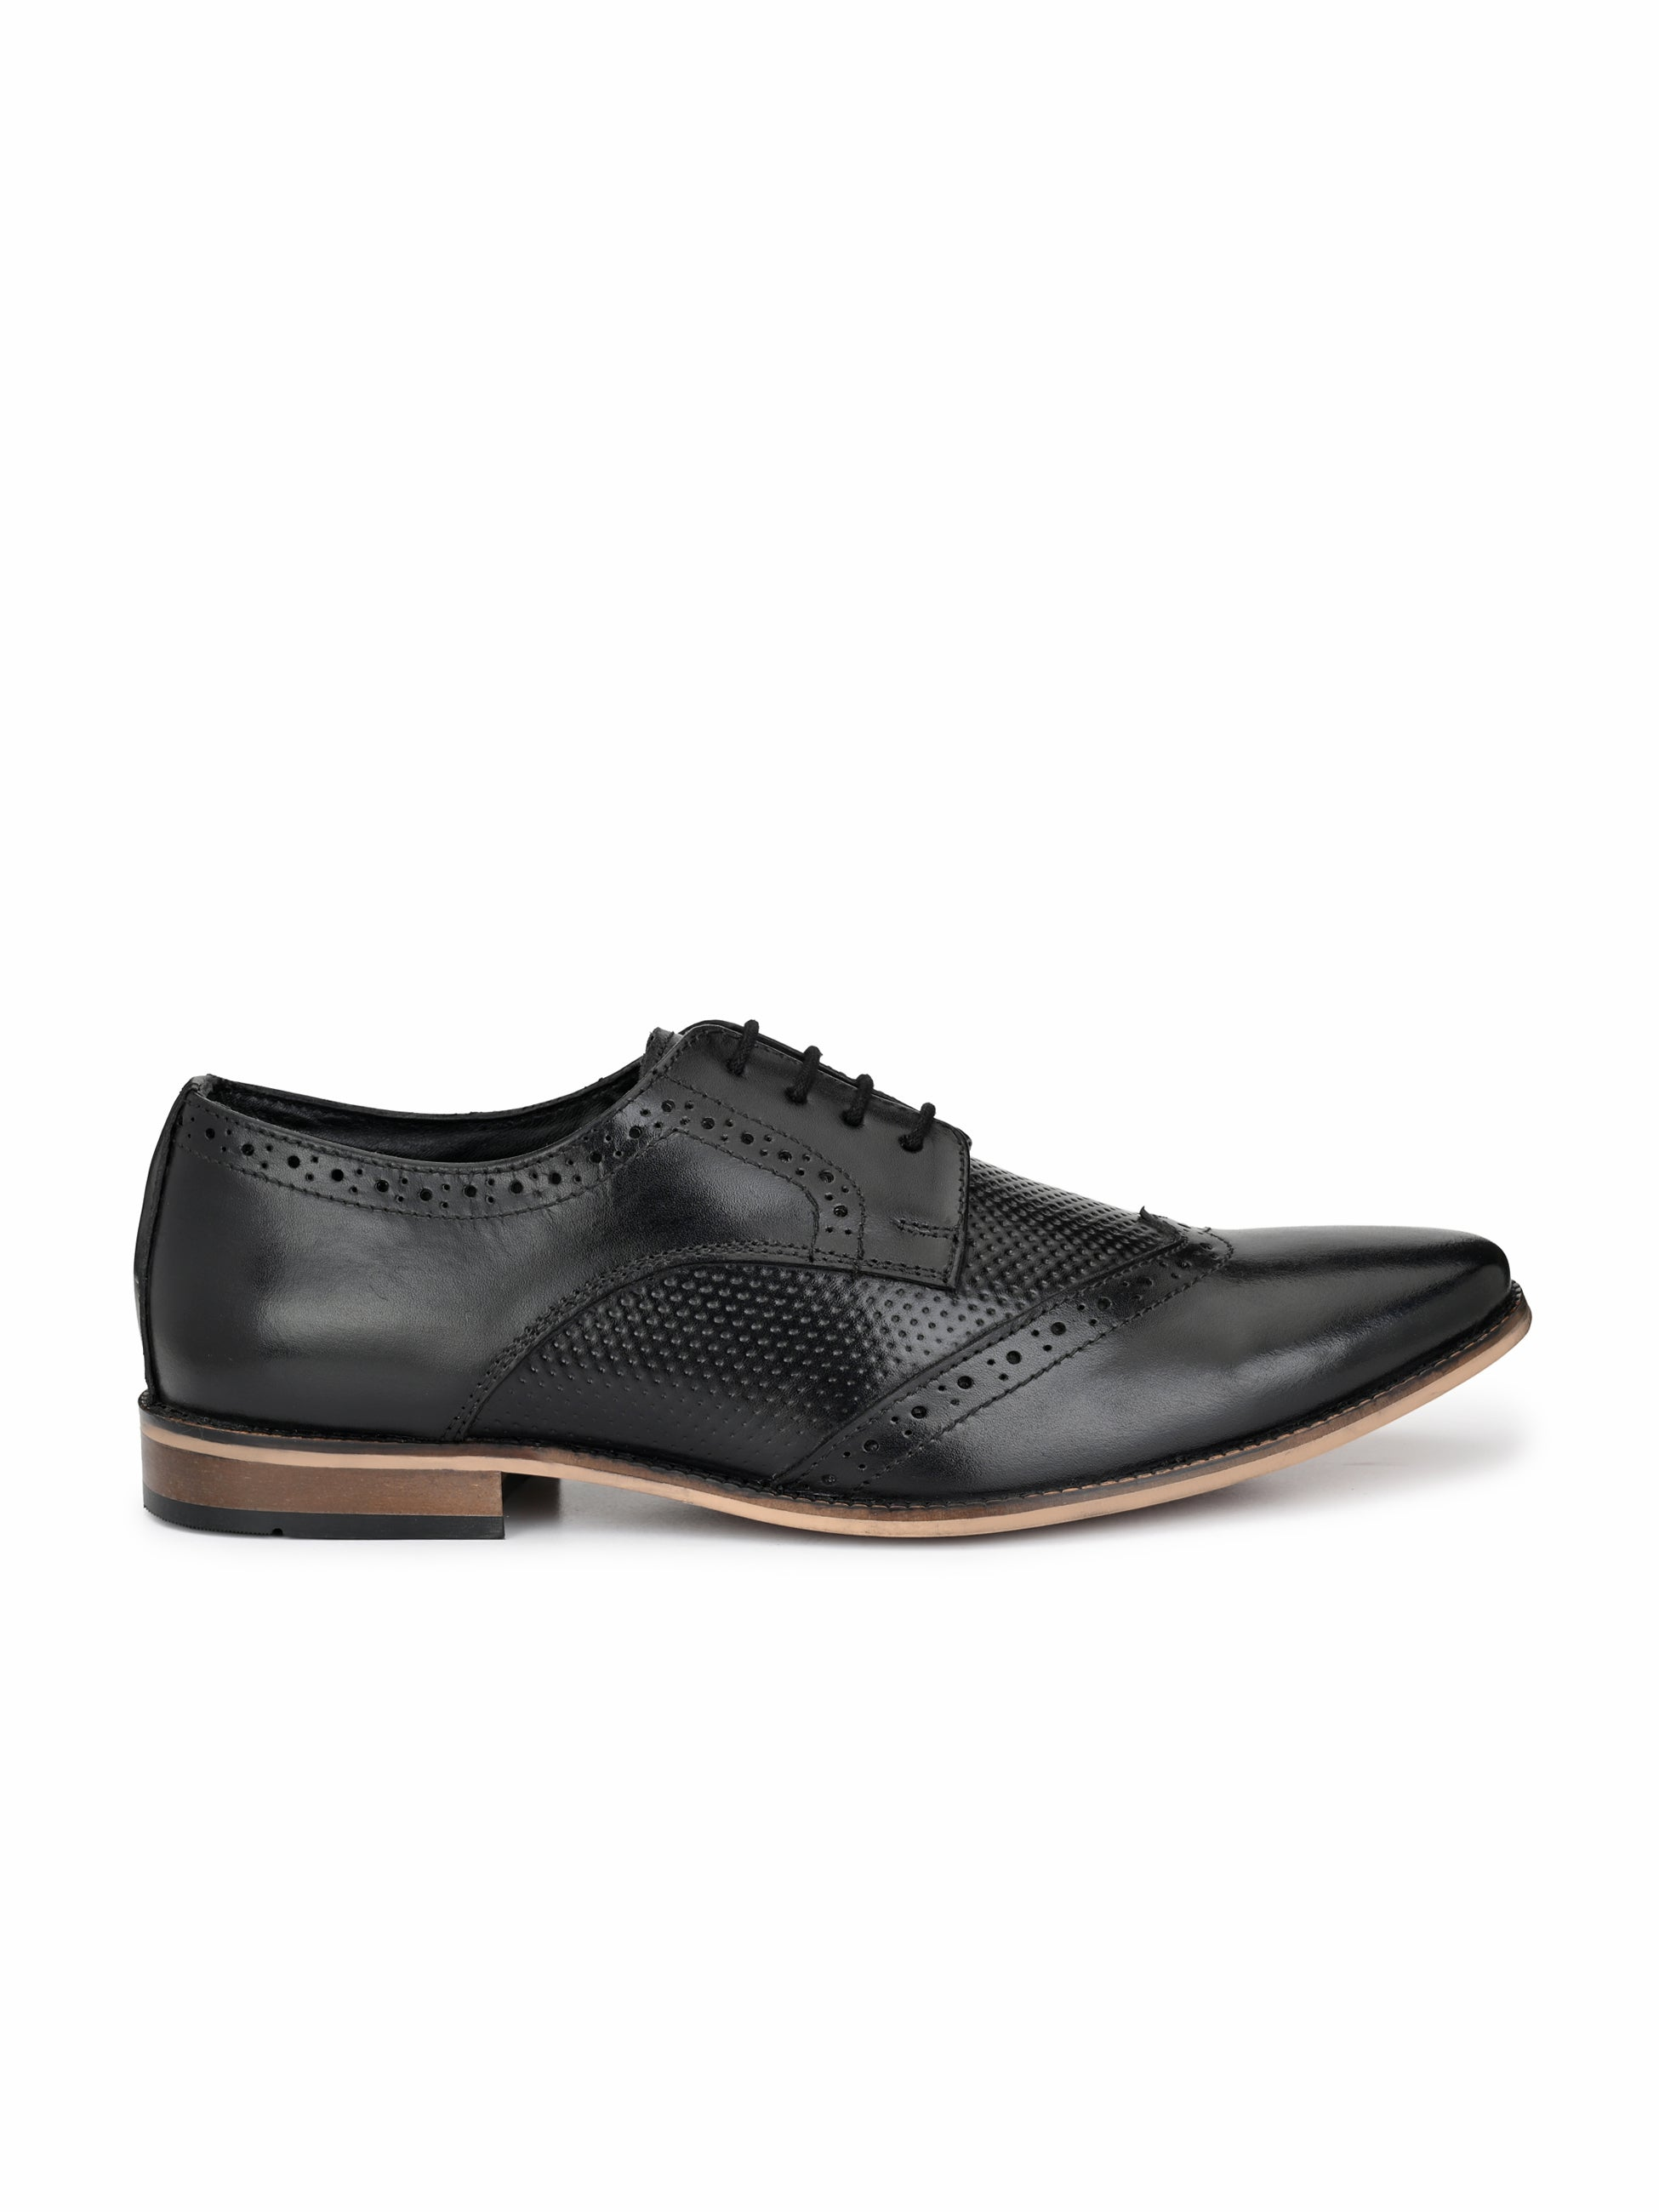 Black Leather Derby Brogues - shoegaro